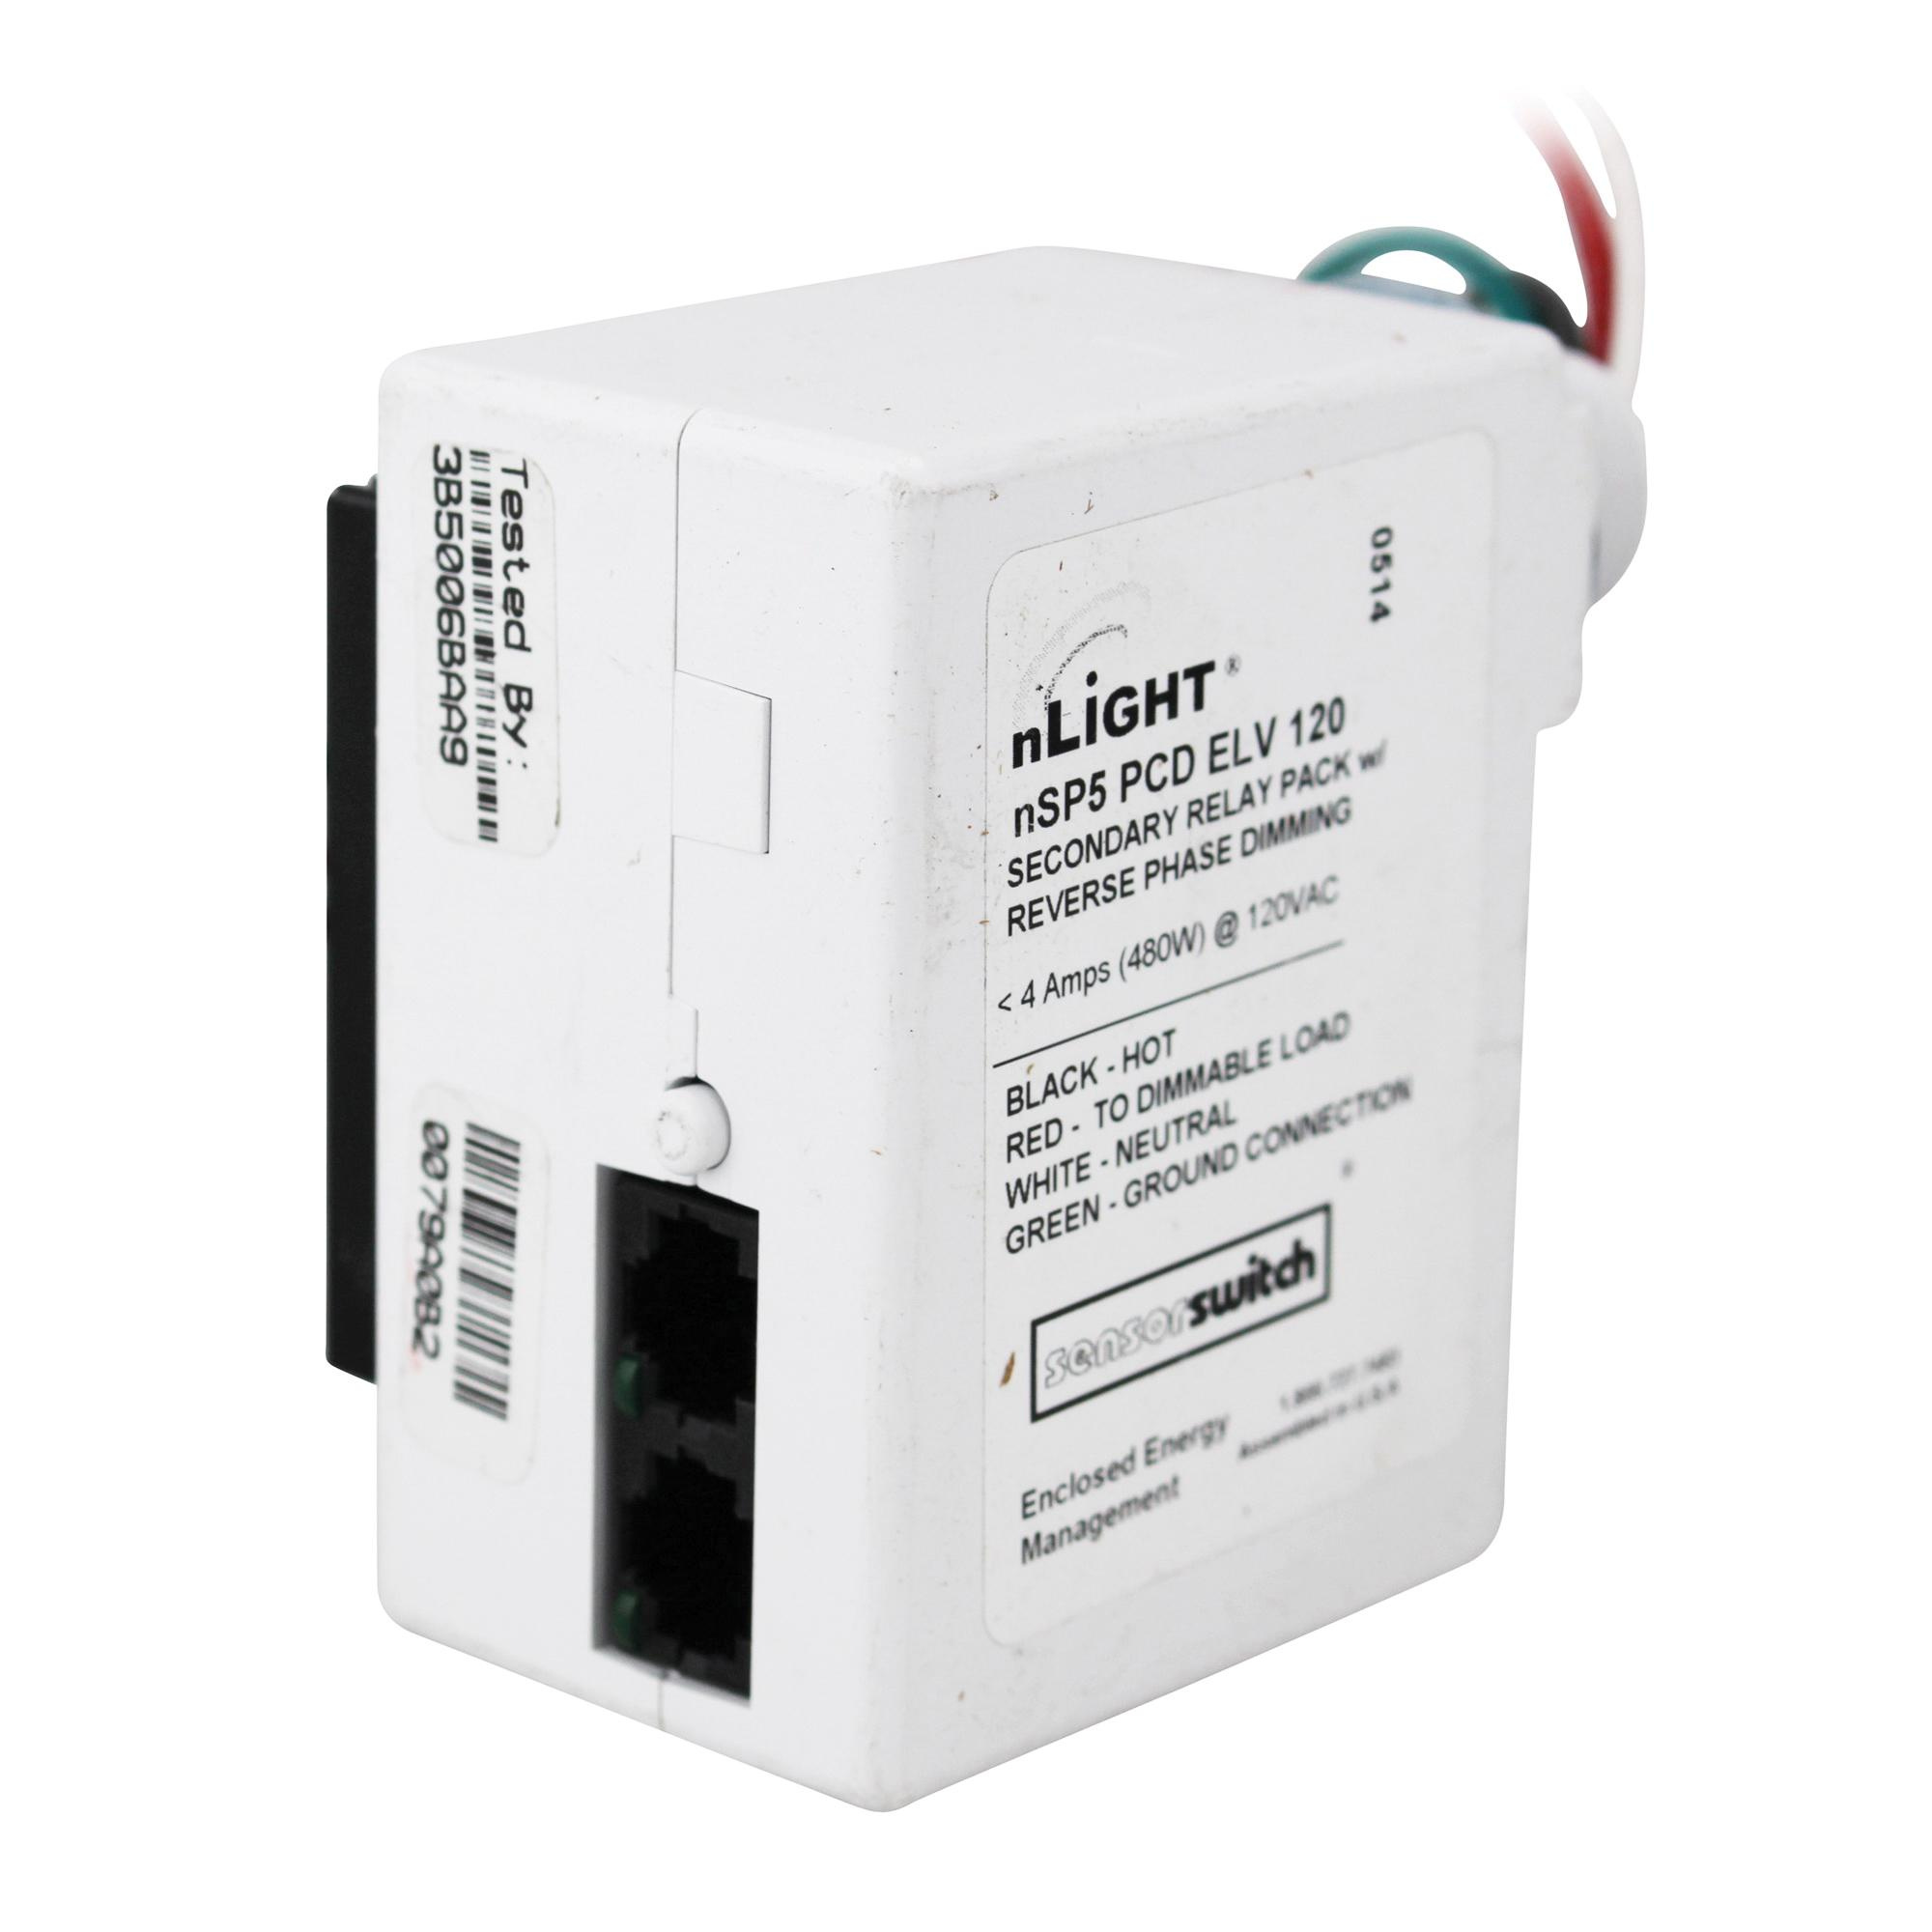 Lithonia Lighting Nsp5 Pcd Elv 120 1 2 Inch Knockout Open